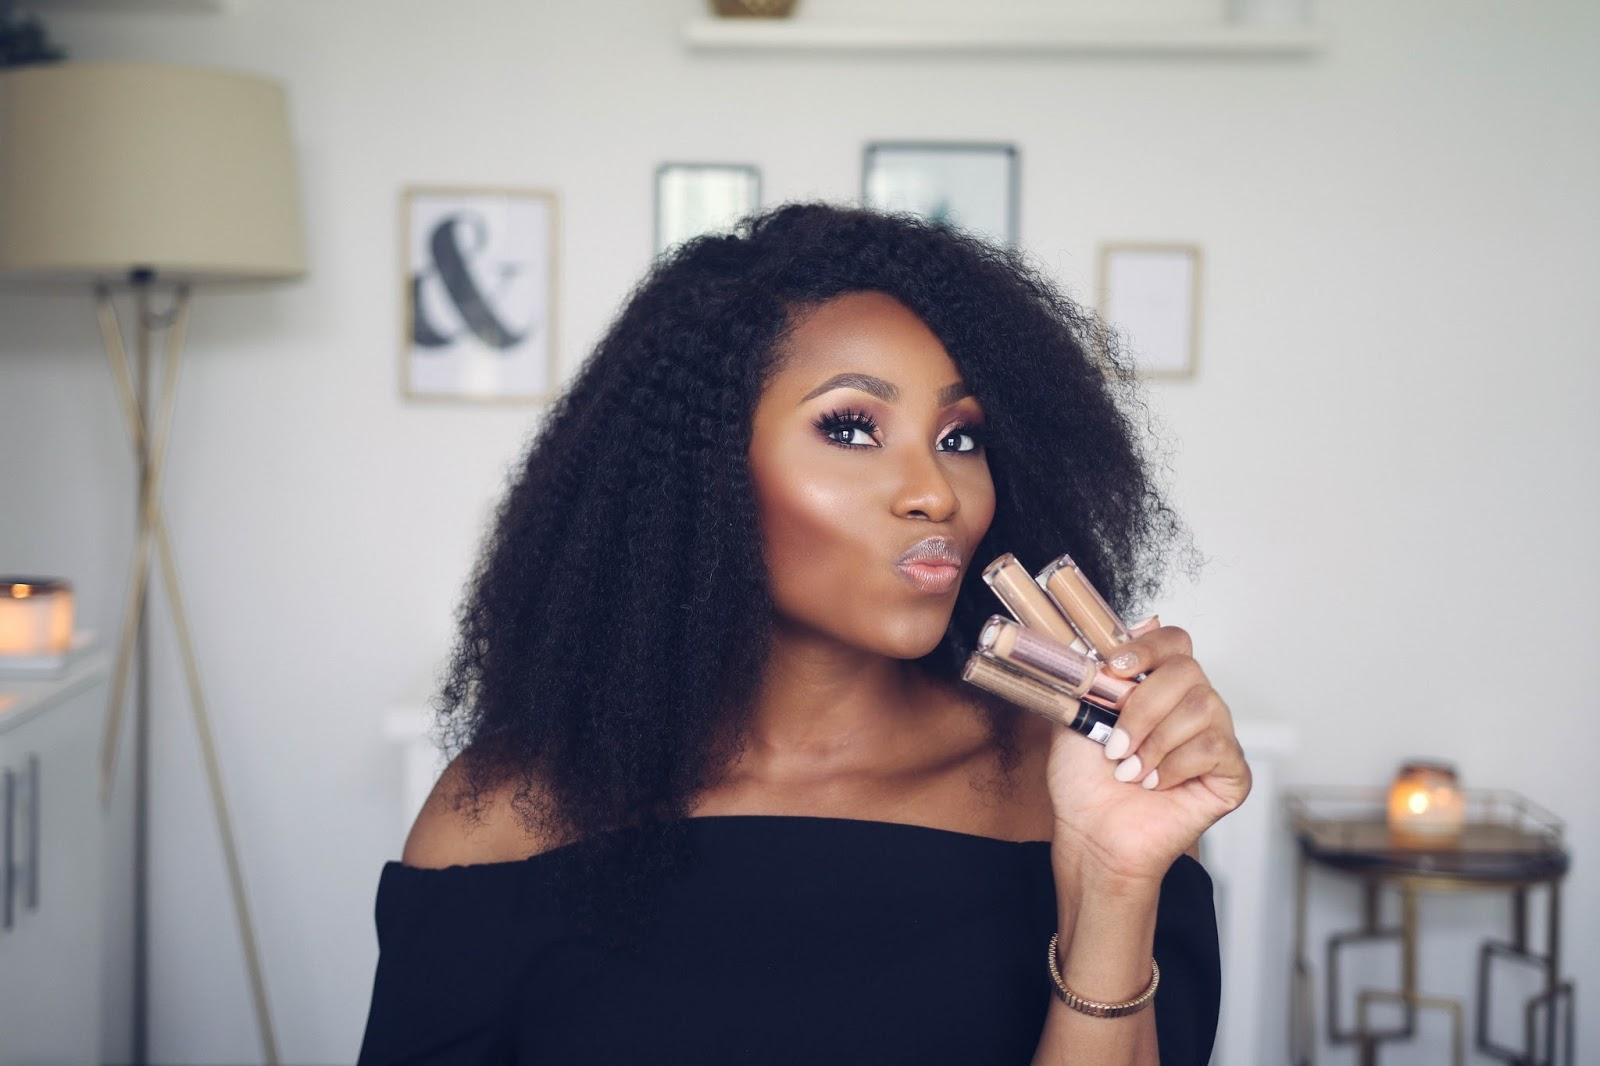 Dimma Umeh Says These Are The Top 5 Highlighters For Dark